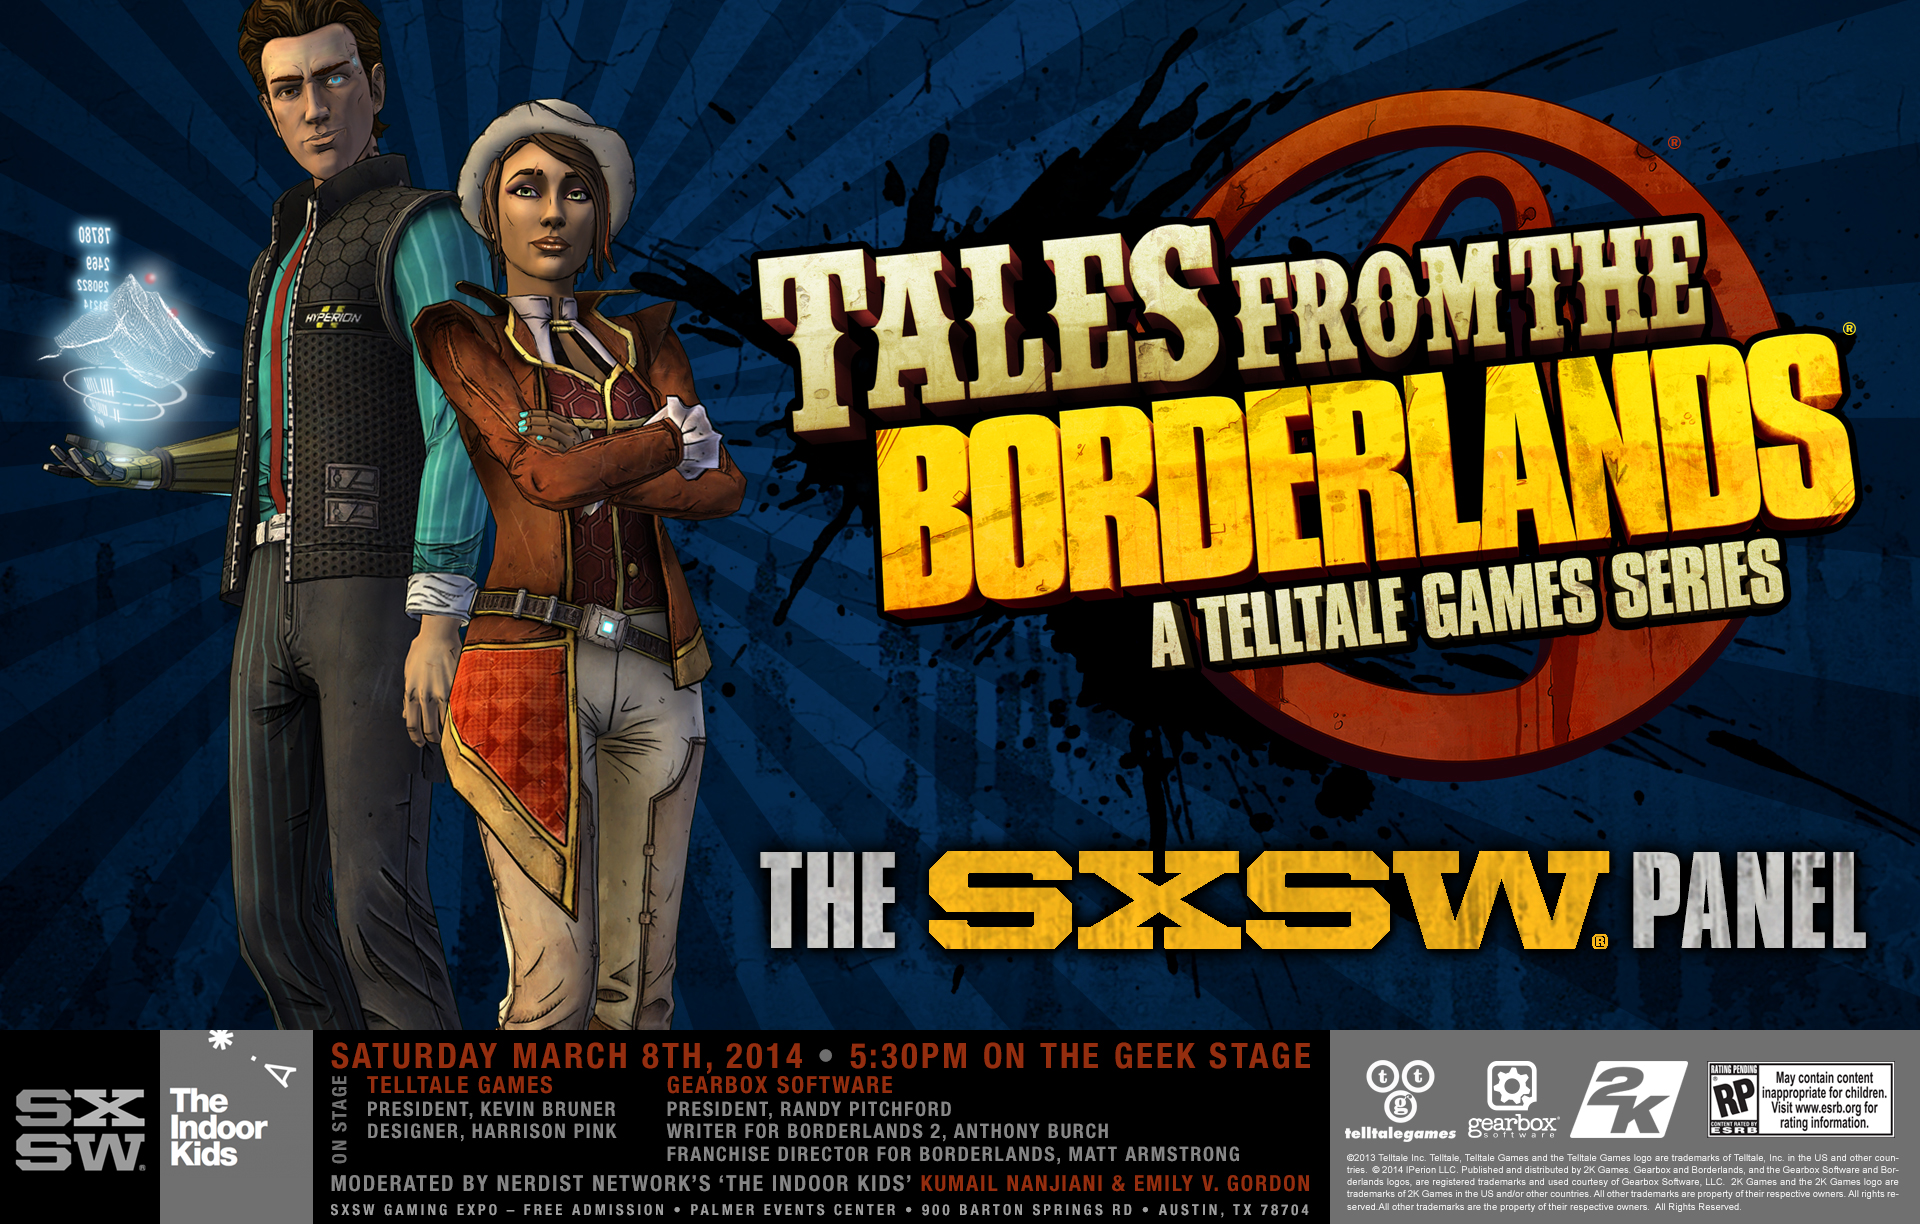 Telltale Games Tales from the Borderlands unveiled at SXSW